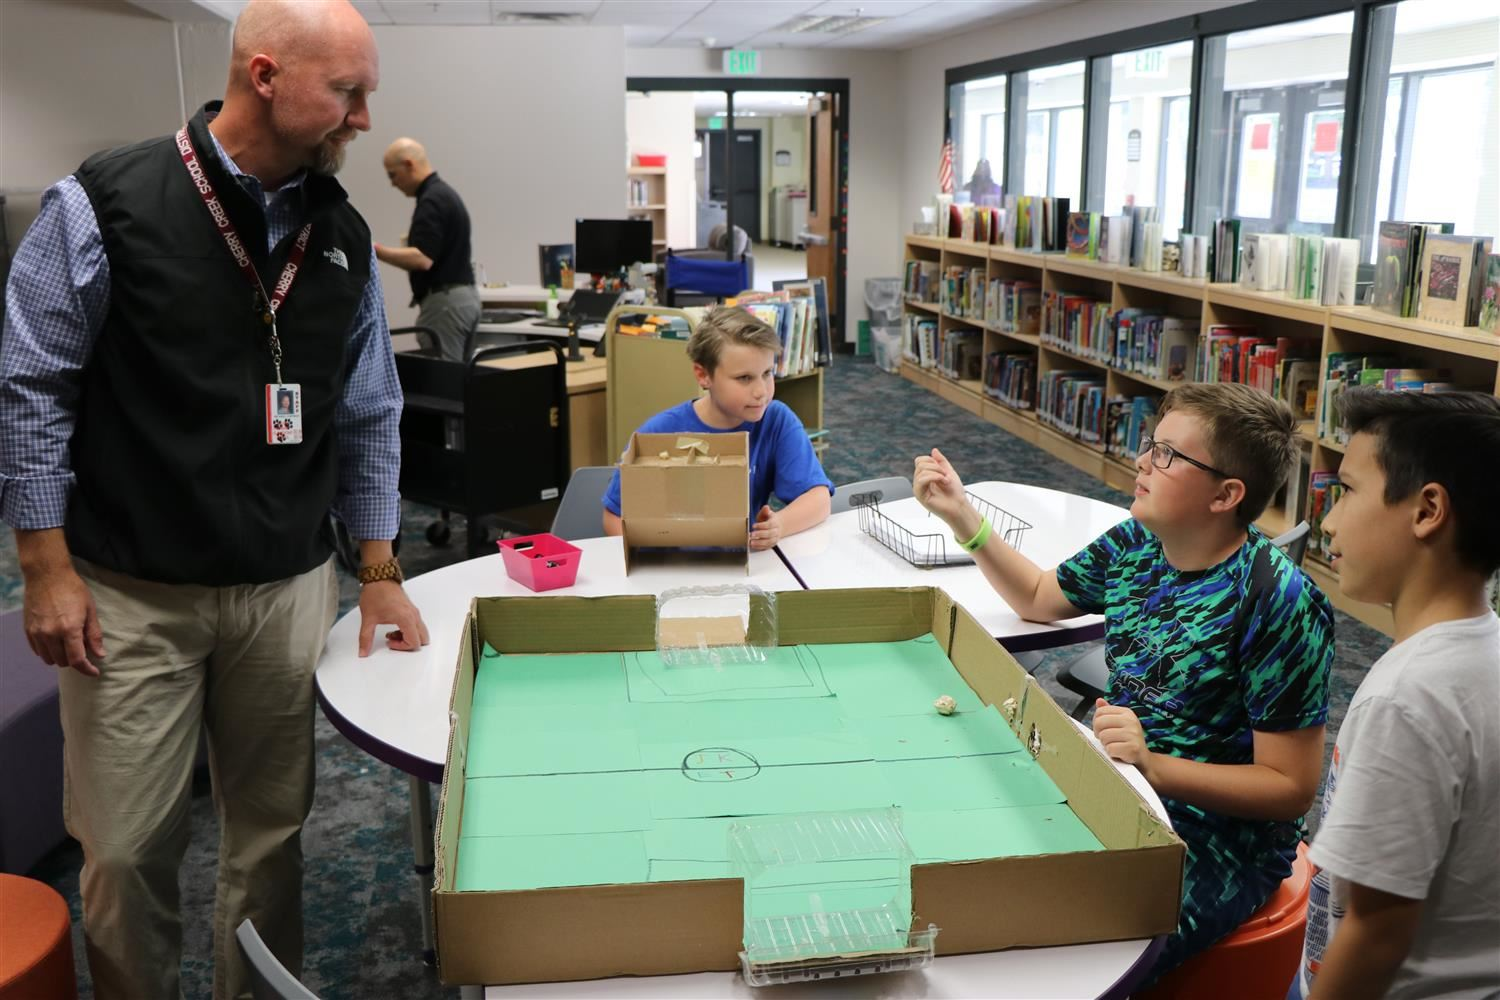 Principal Mike Chapman talks to students about a cardboard stadium they created in their newly renovated library.